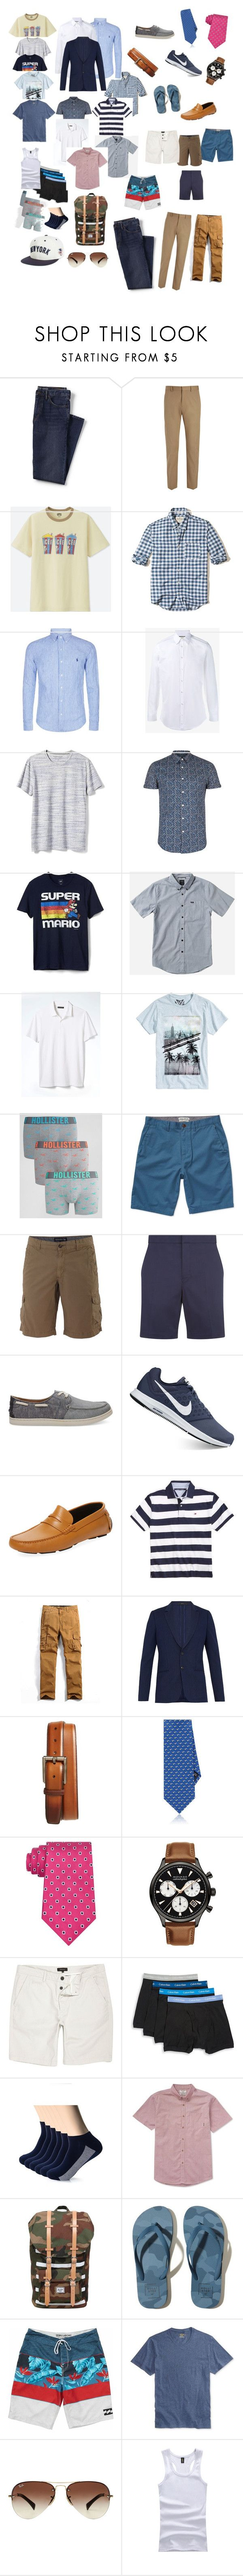 """""""X Europe"""" by swbcmd ❤ liked on Polyvore featuring Lands' End, Joseph, Uniqlo, Hollister Co., Polo Ralph Lauren, Gucci, Banana Republic, Topman, Gap and RVCA"""